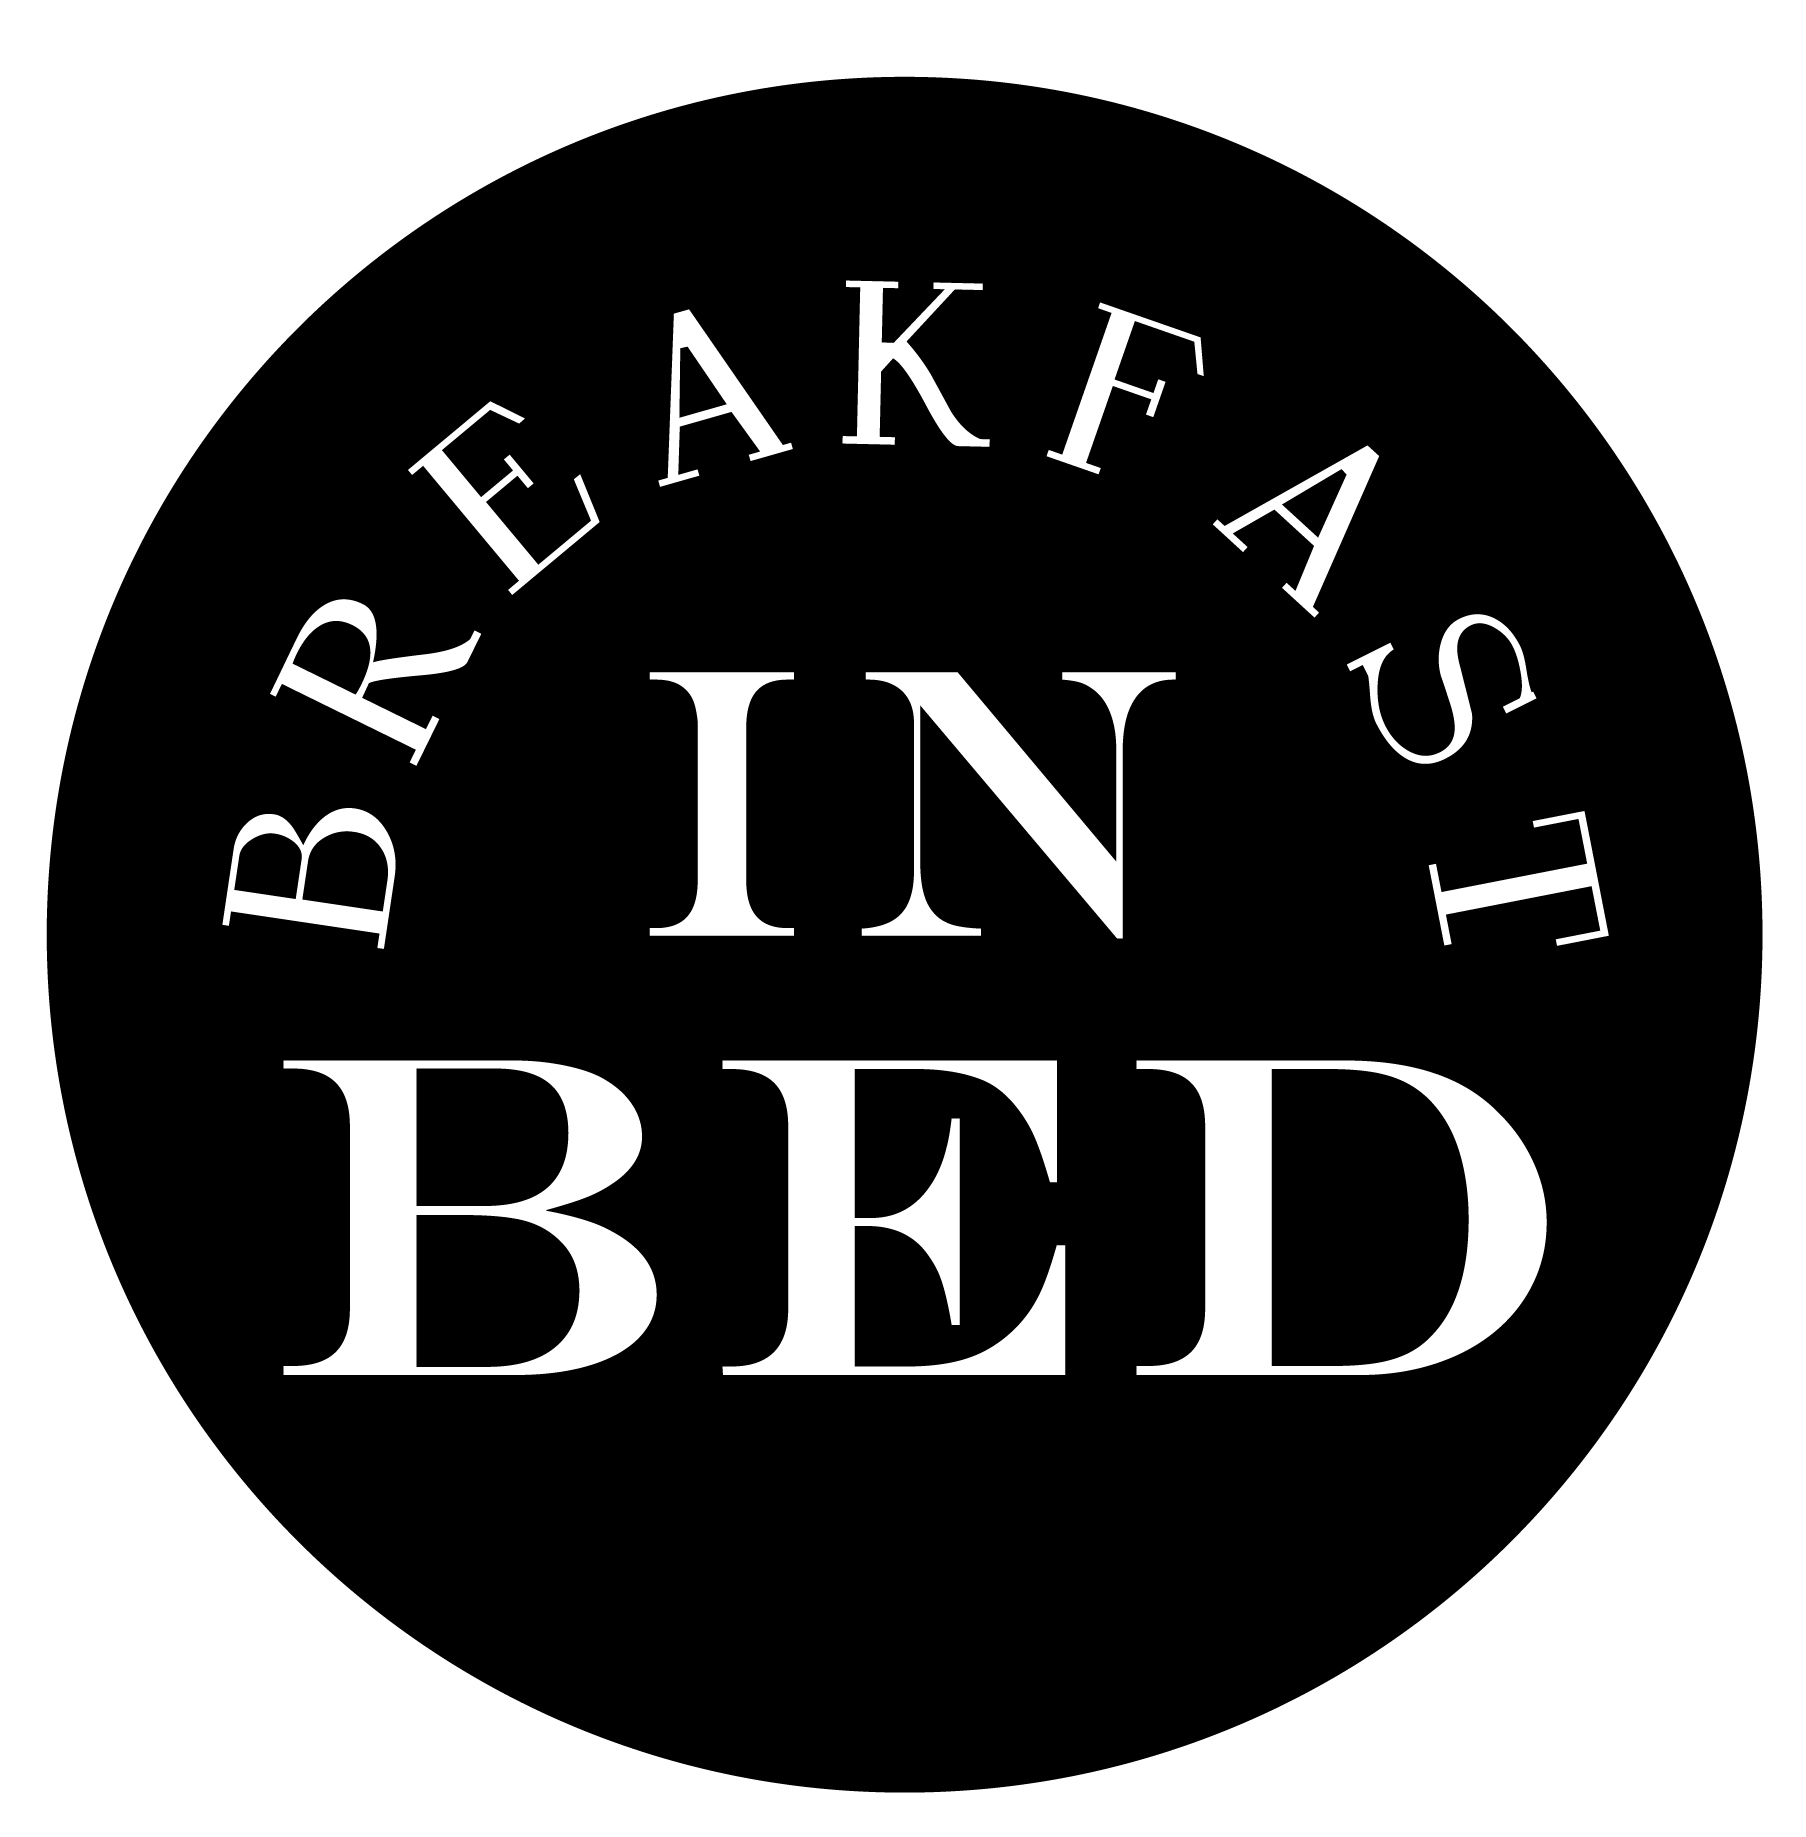 Enjoy a hot beverage of your choice and a light bite in the comfort of your guestroom with our signature Breakfast In Bed, delivered to your door at no extra charge.